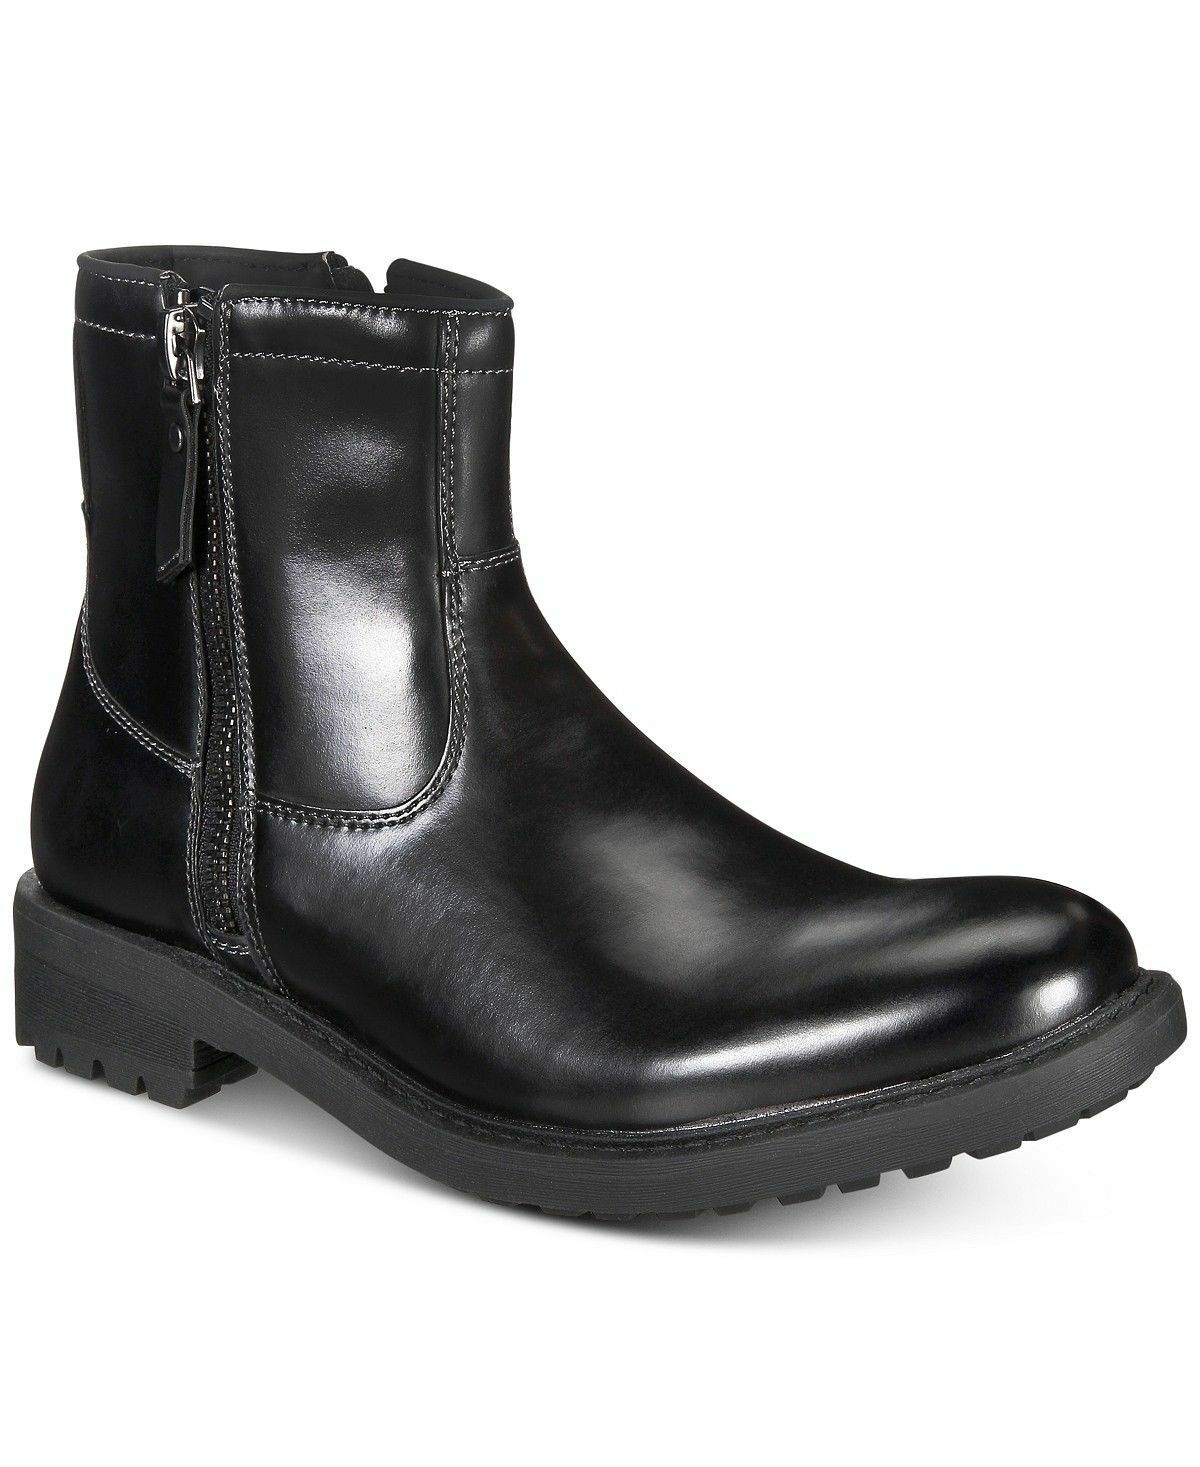 Unlisted by Kenneth Cole Men C-Roam Zip-Up Black Boot Size US 11.5 M  EUR 45 New